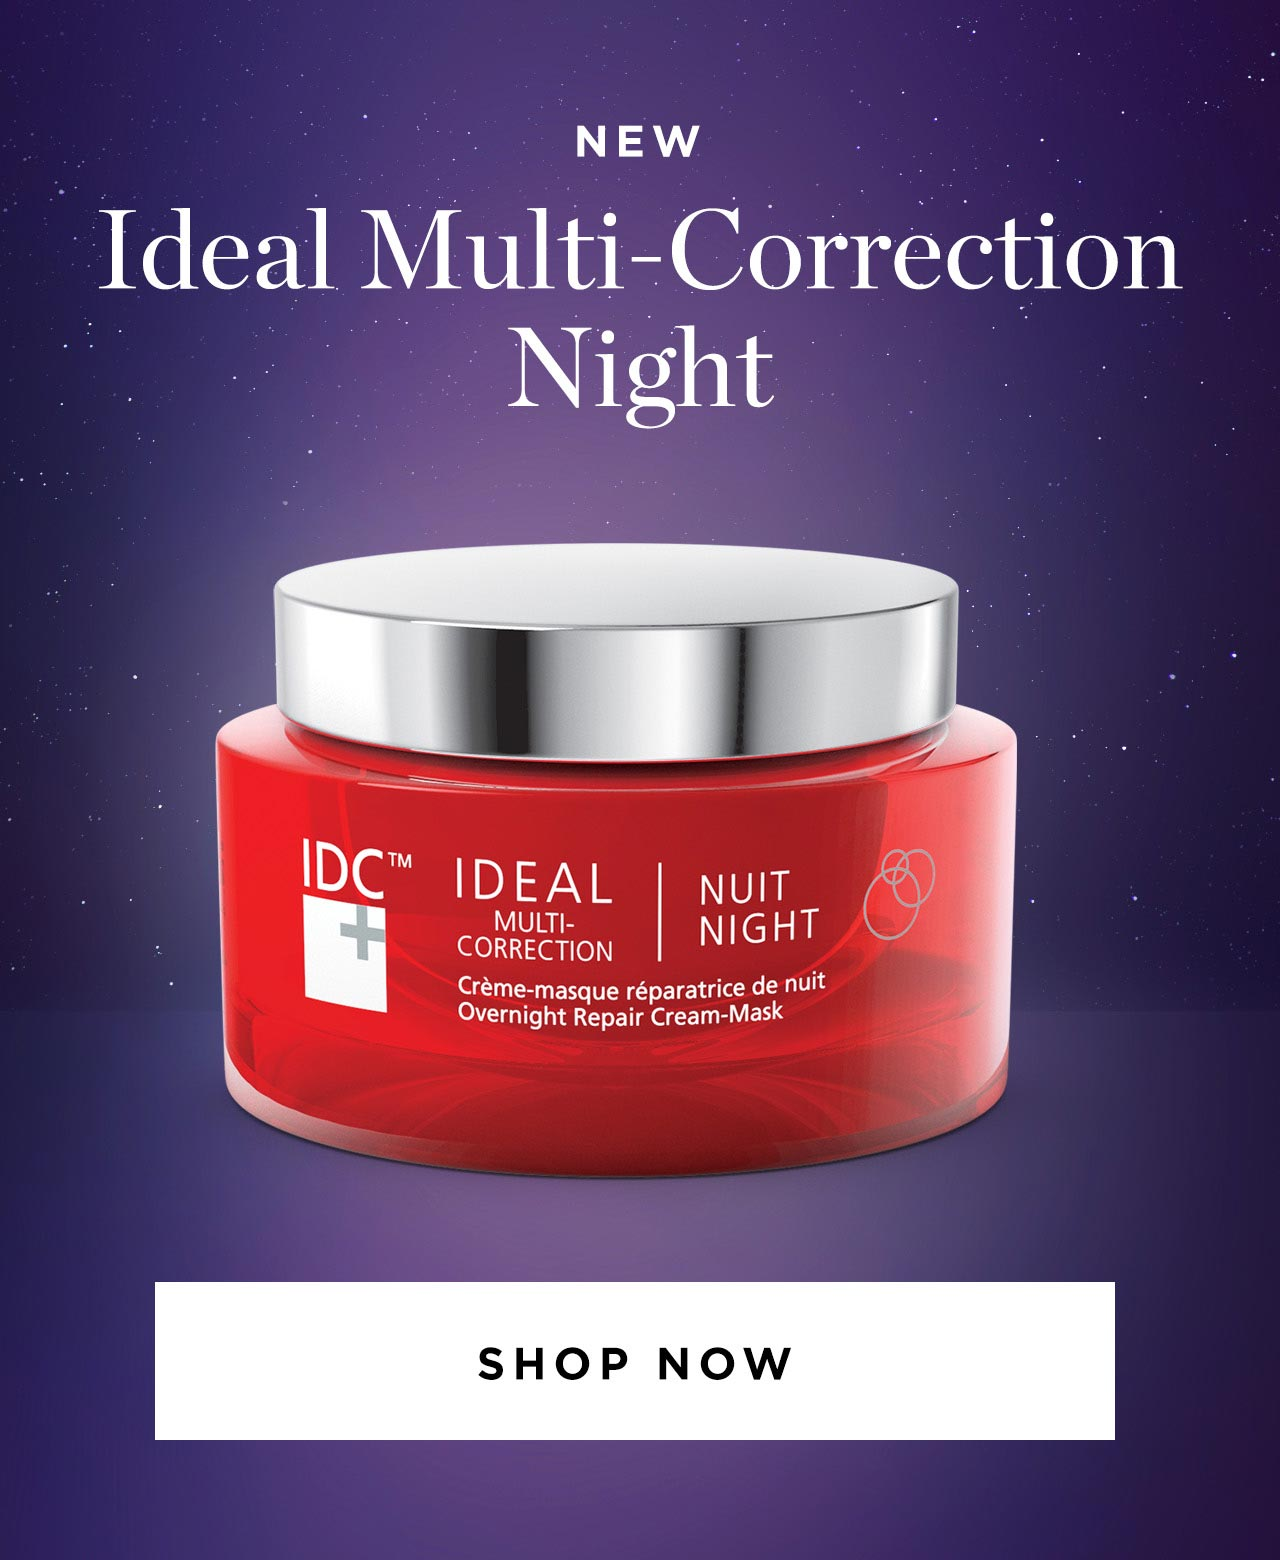 Ideal Multi-Correction Night